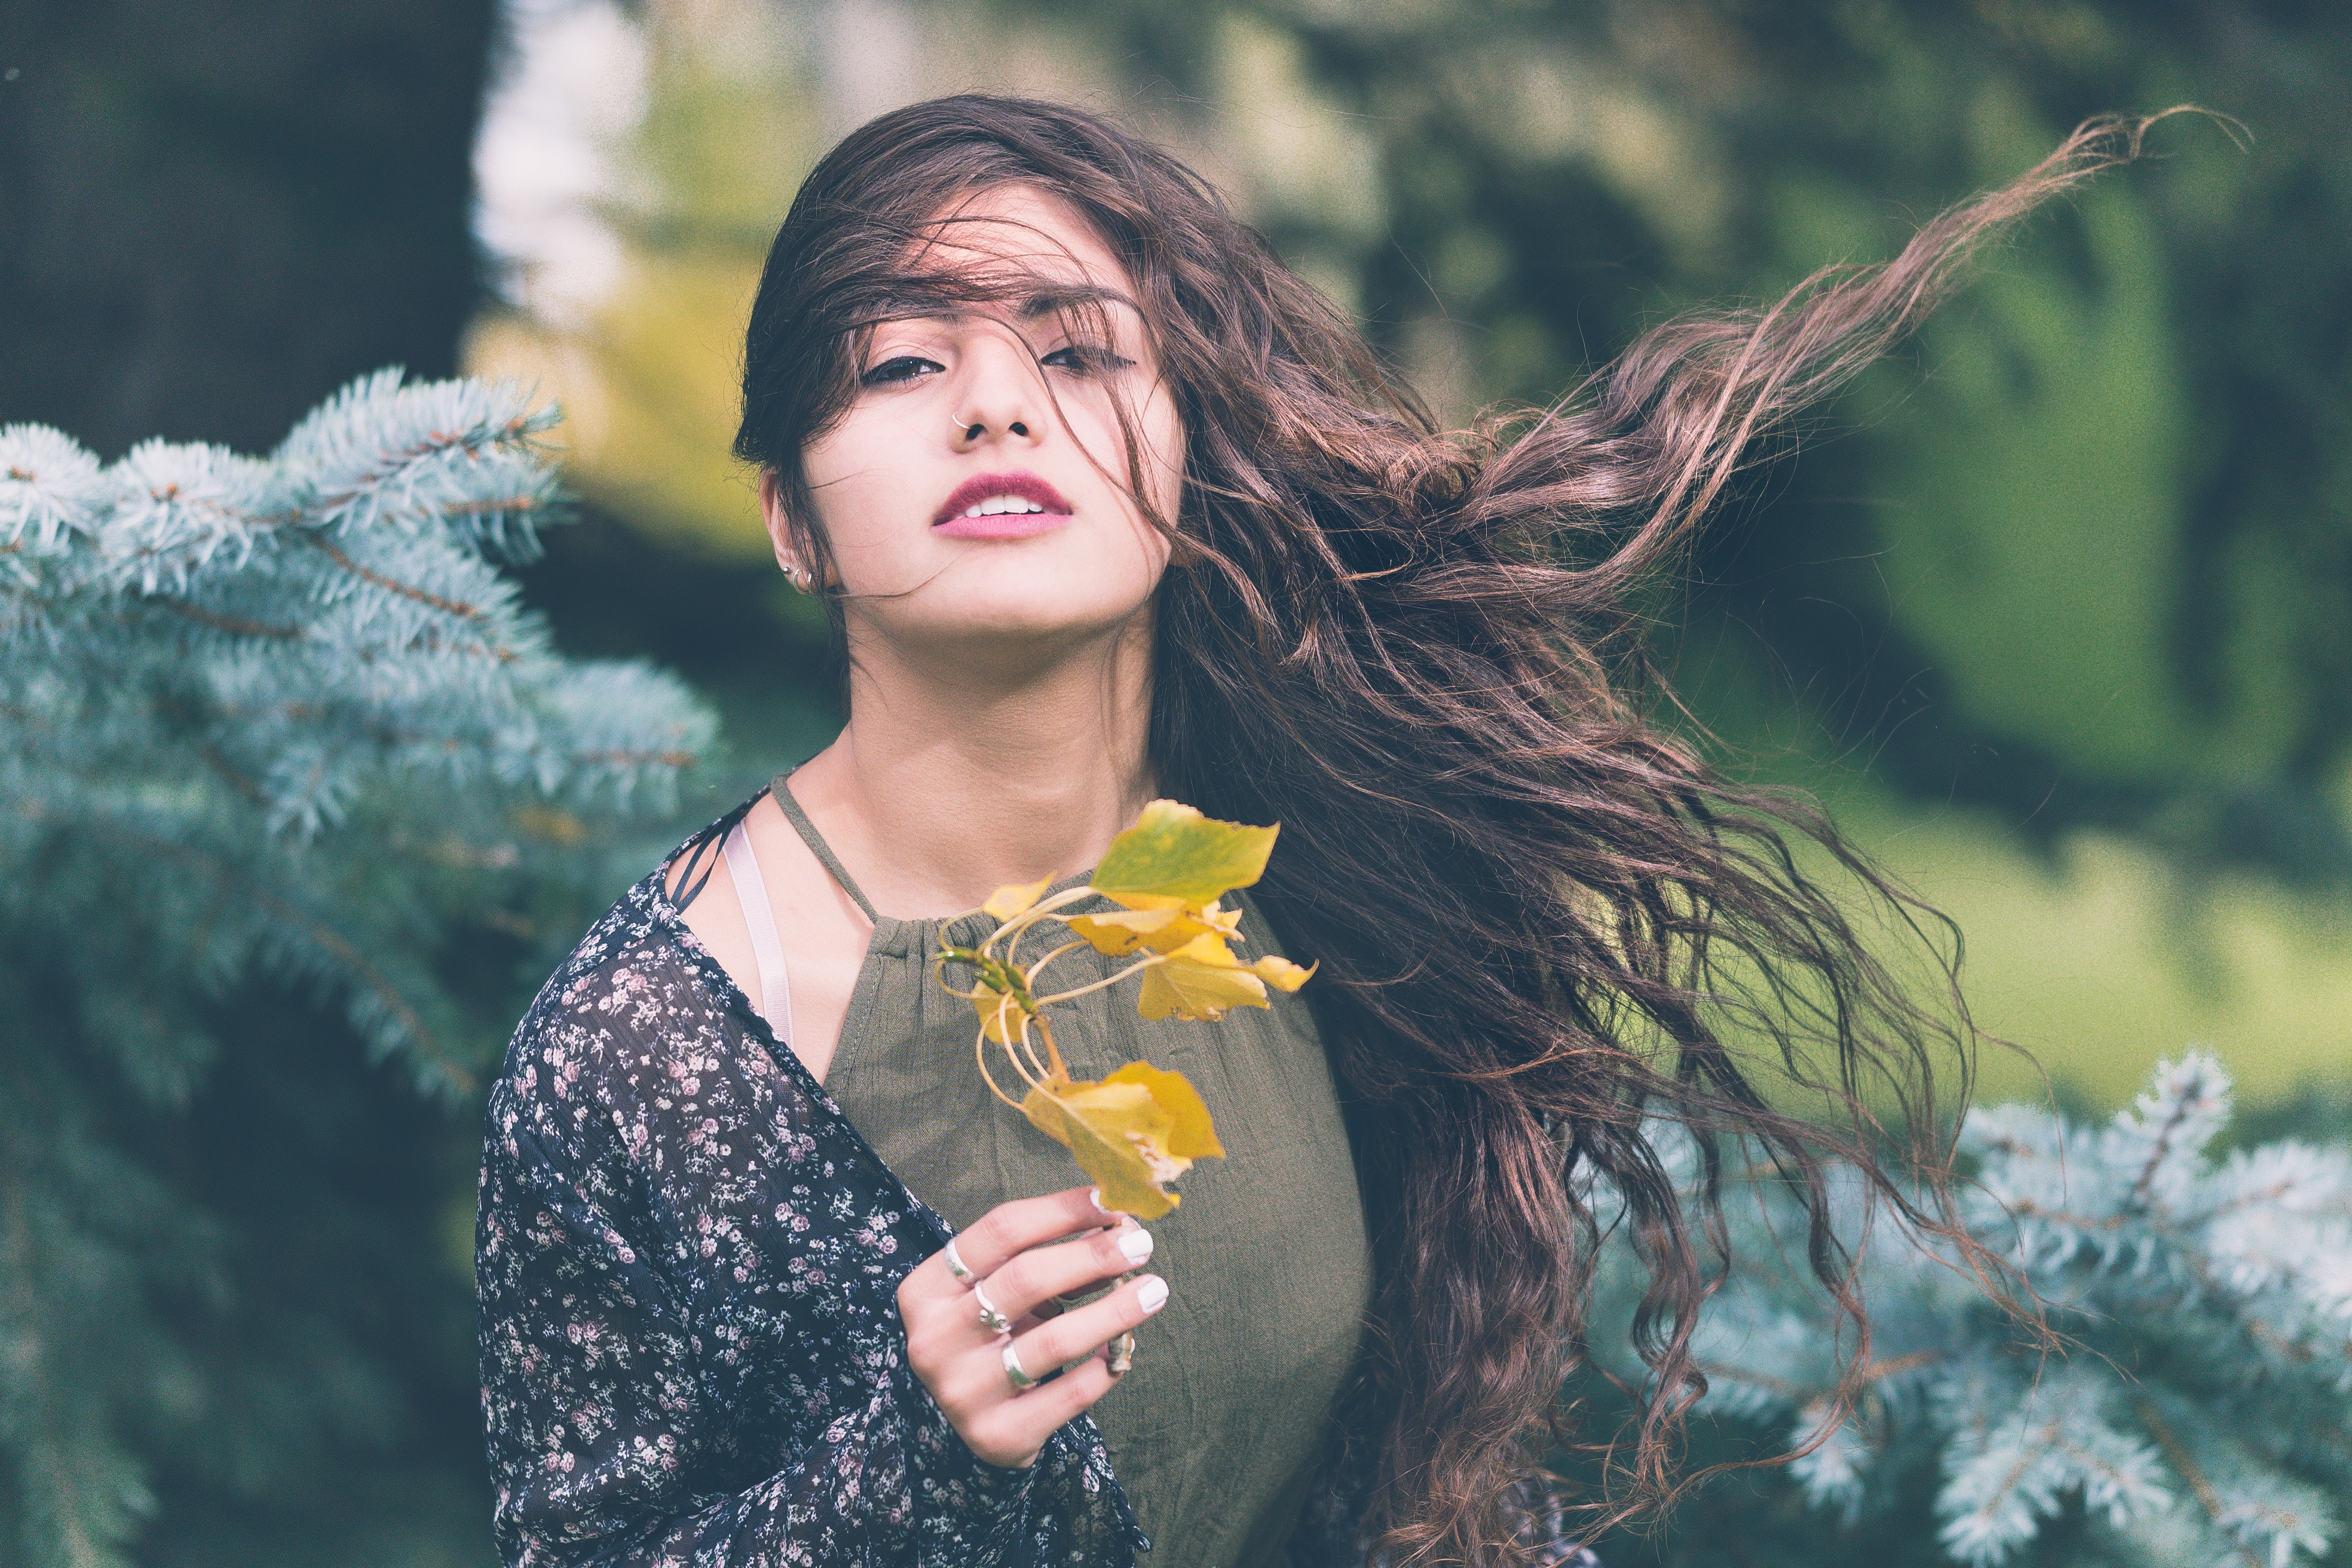 Woman with windblown hair holding a leaf near a pine tree